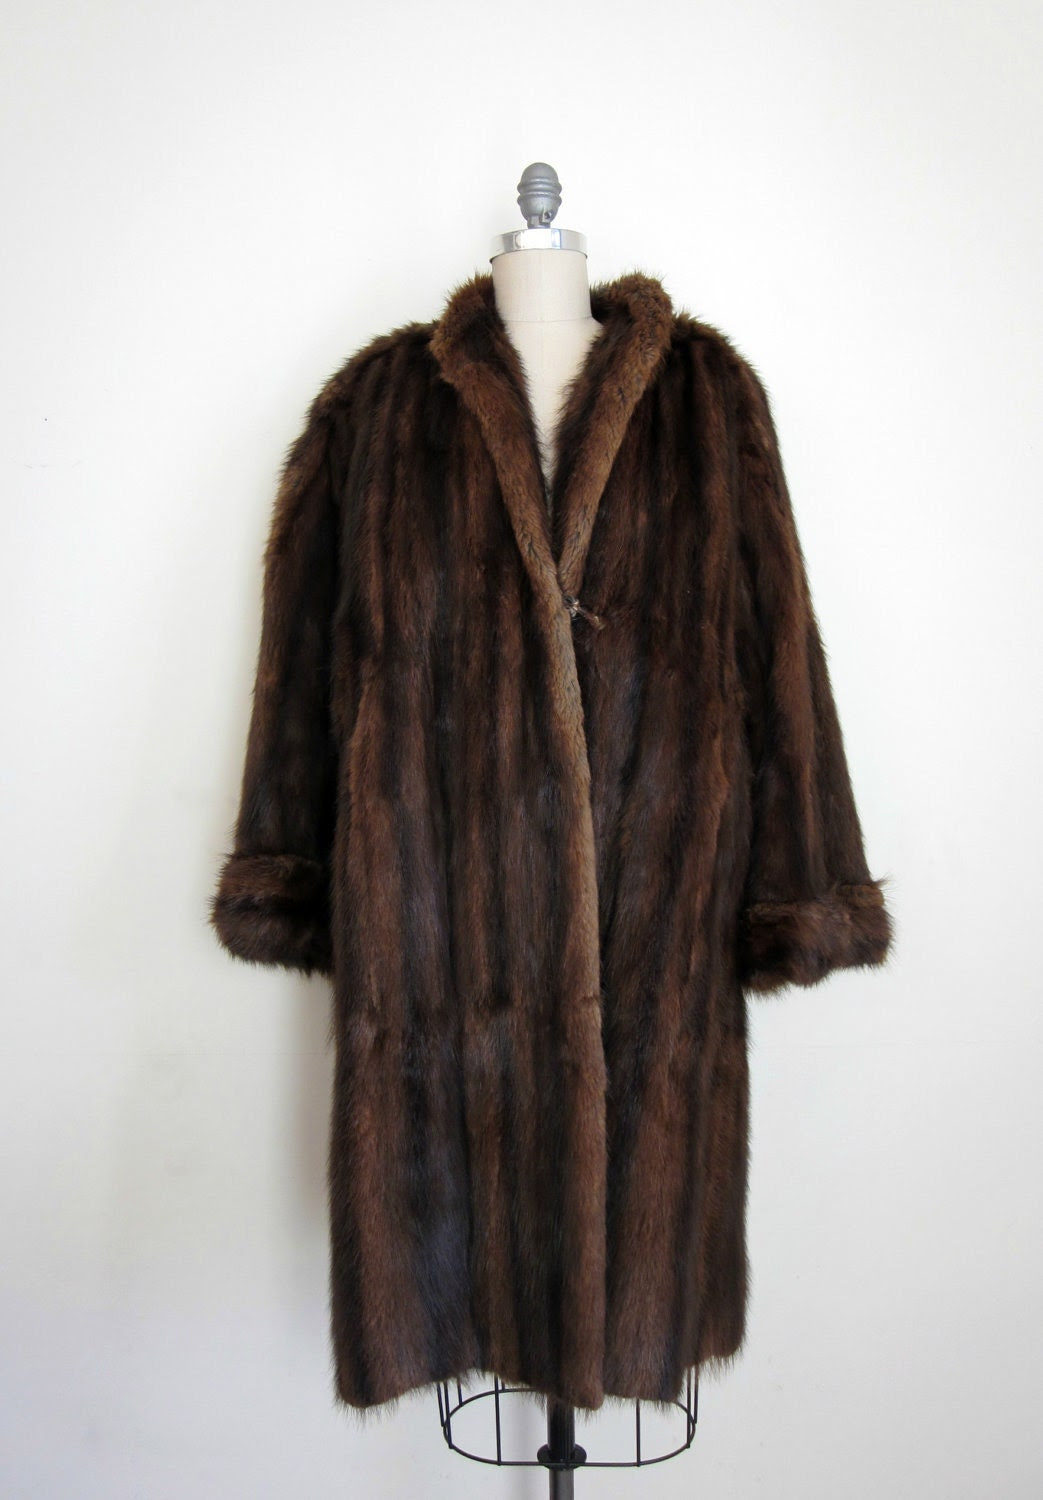 40's kakas furs mink coat long from edward kakas and sons 93 newburry street boston women's